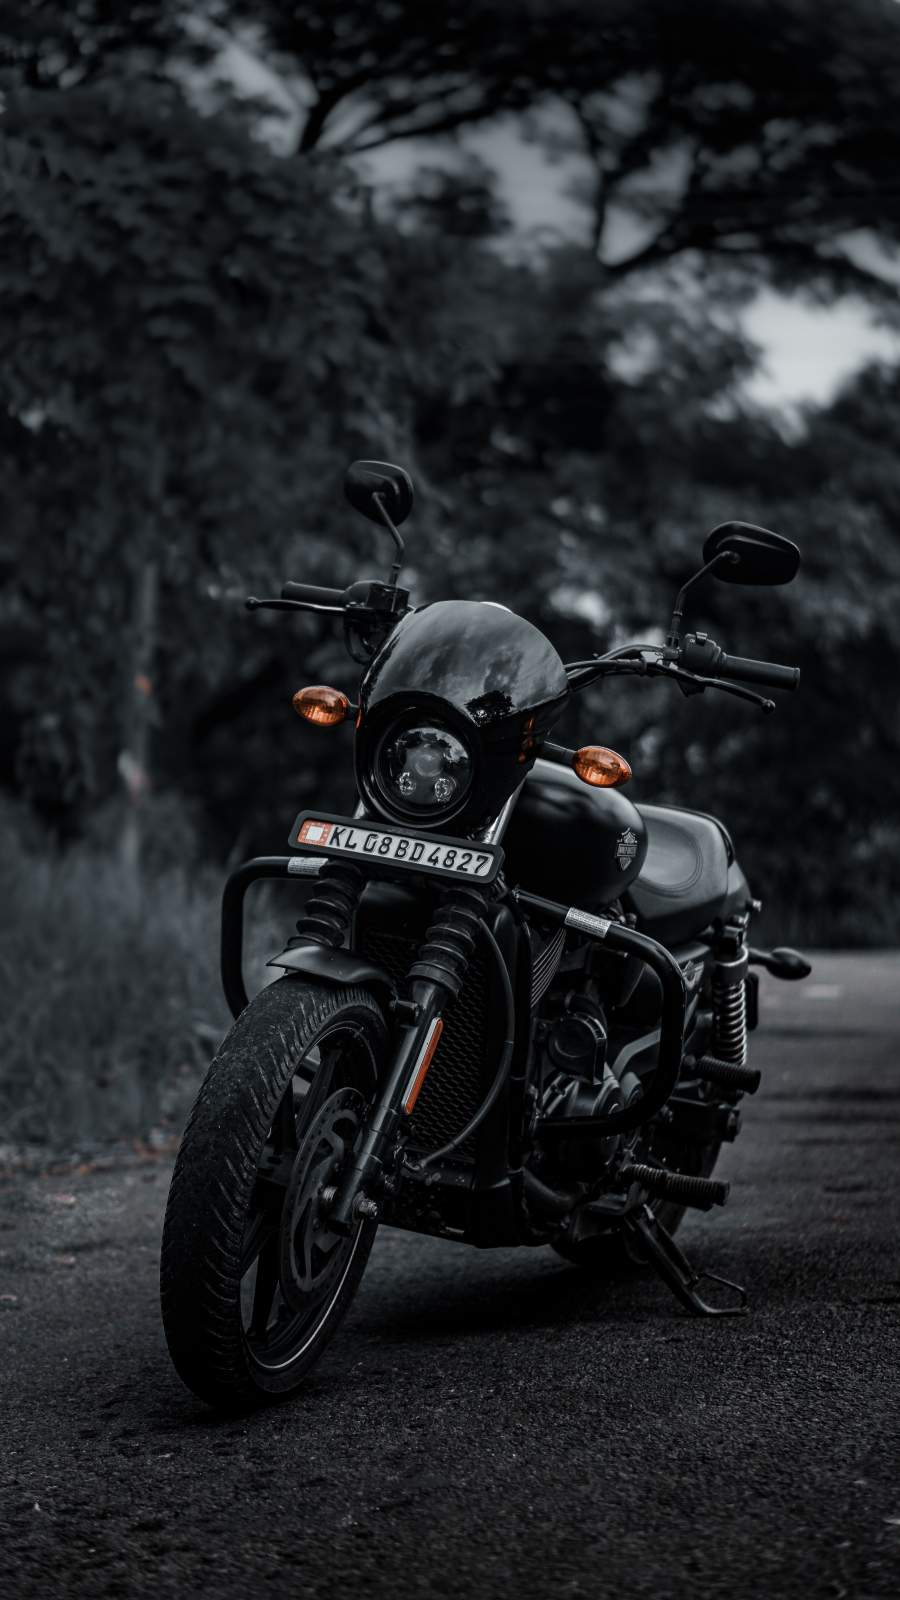 Harley Davidson Bike iPhone Wallpaper